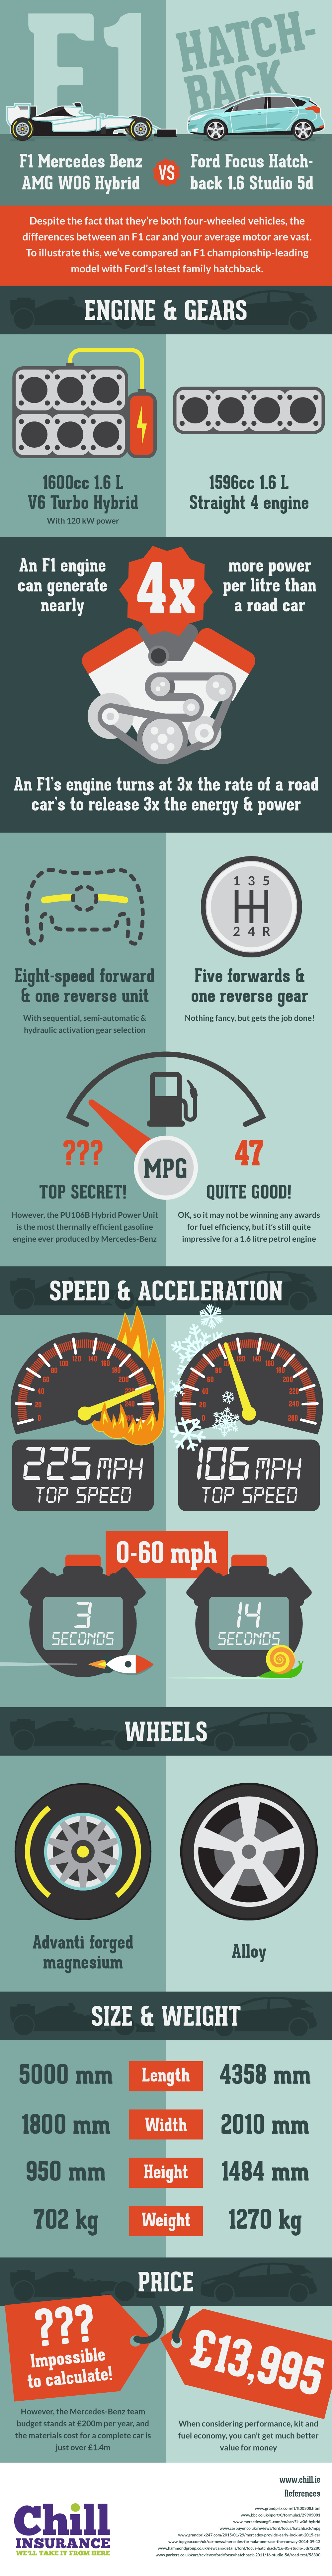 Chill Insurance F1 SEO Infographic Campaign